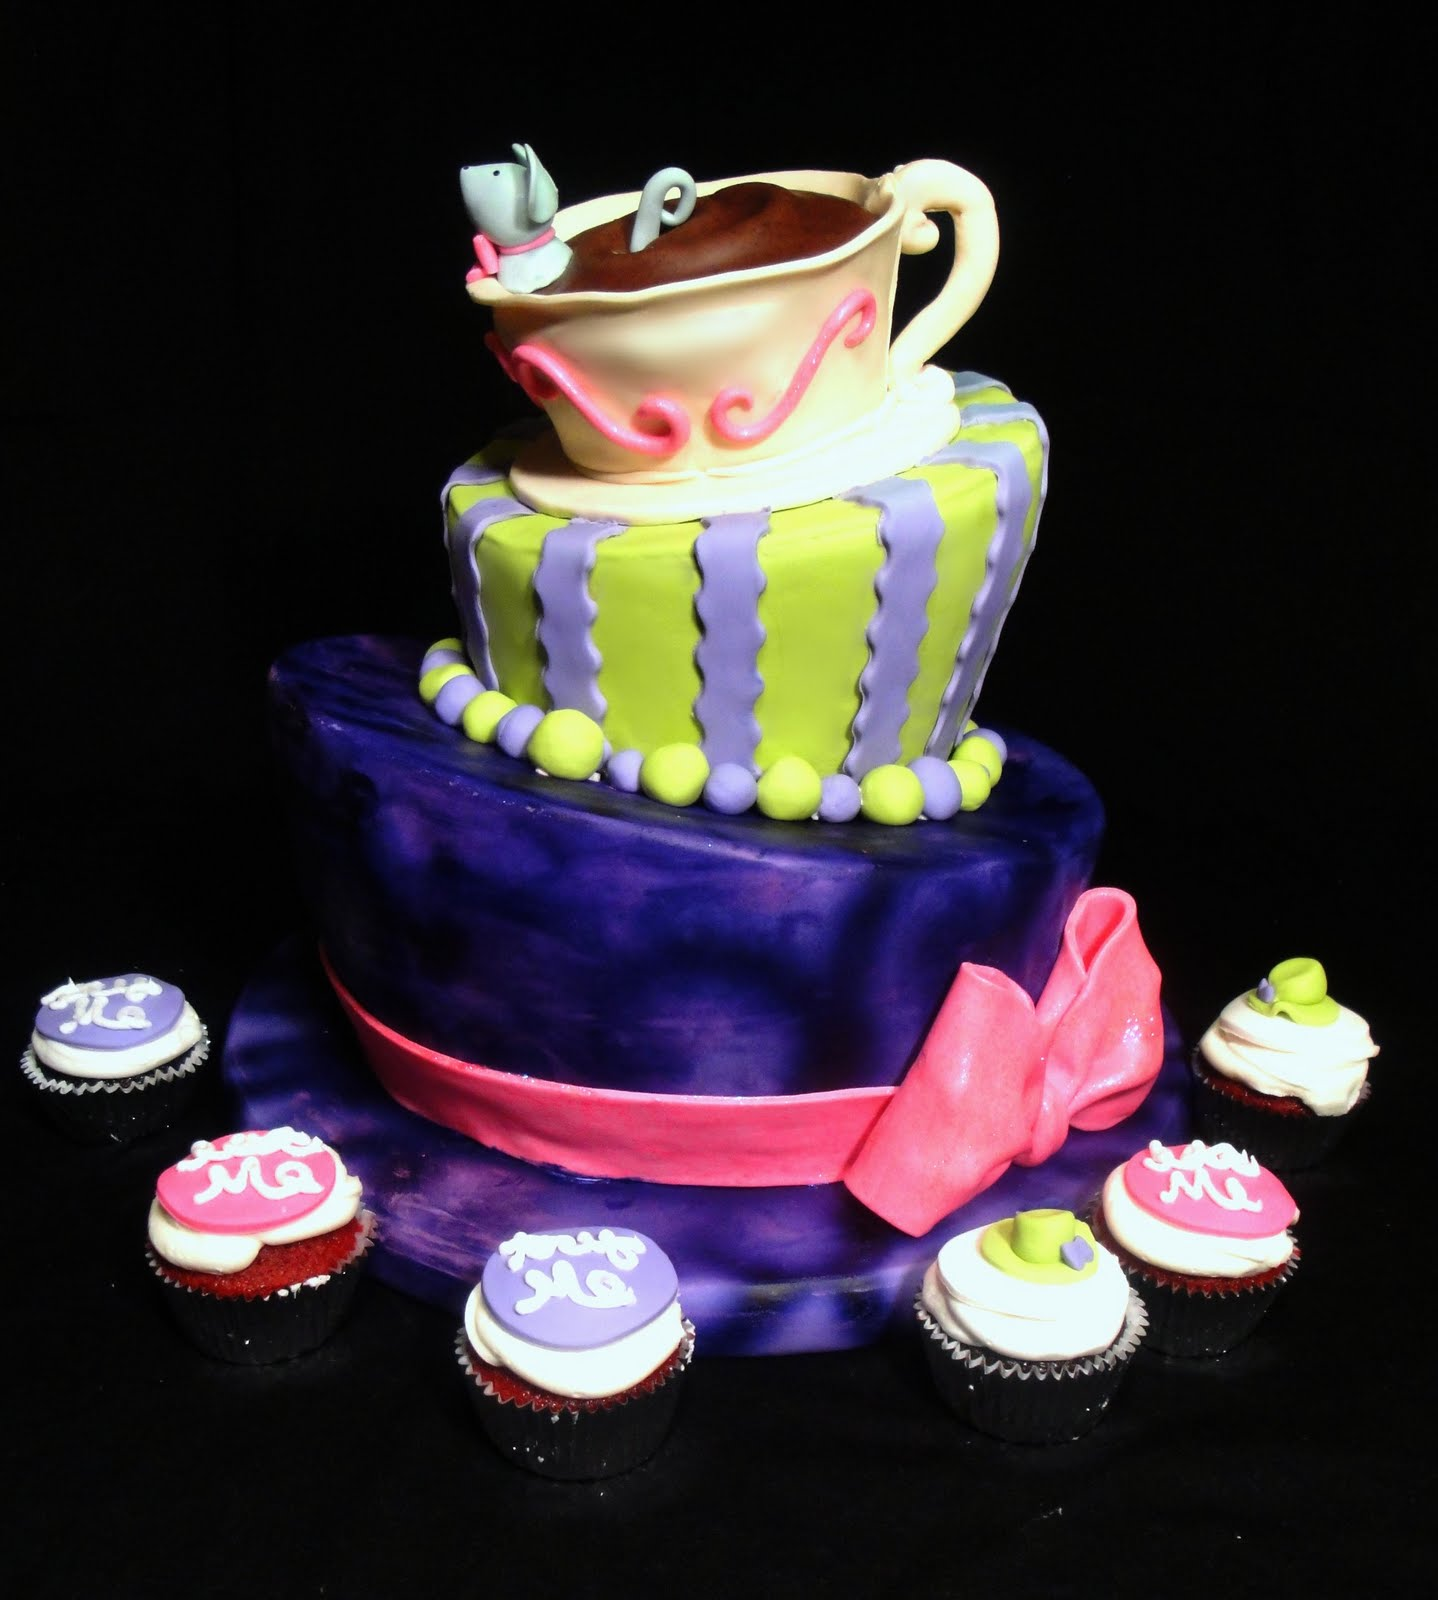 mad hatter cupcakes - photo #46